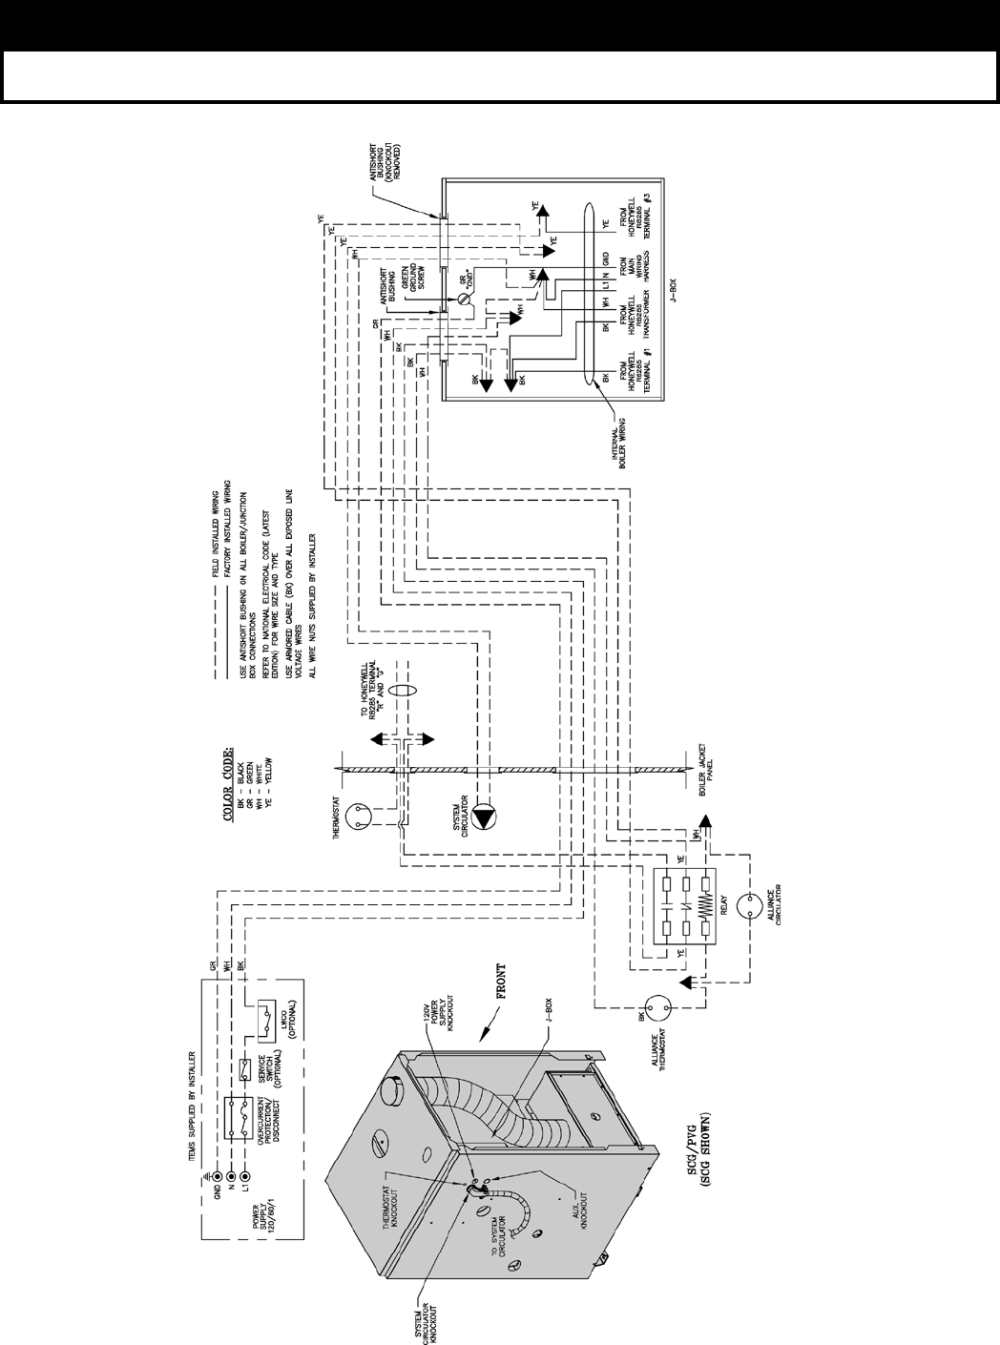 medium resolution of excellent new yorker boiler wiring diagram ideas best image additionally including pvg burnham gas boilers wiring